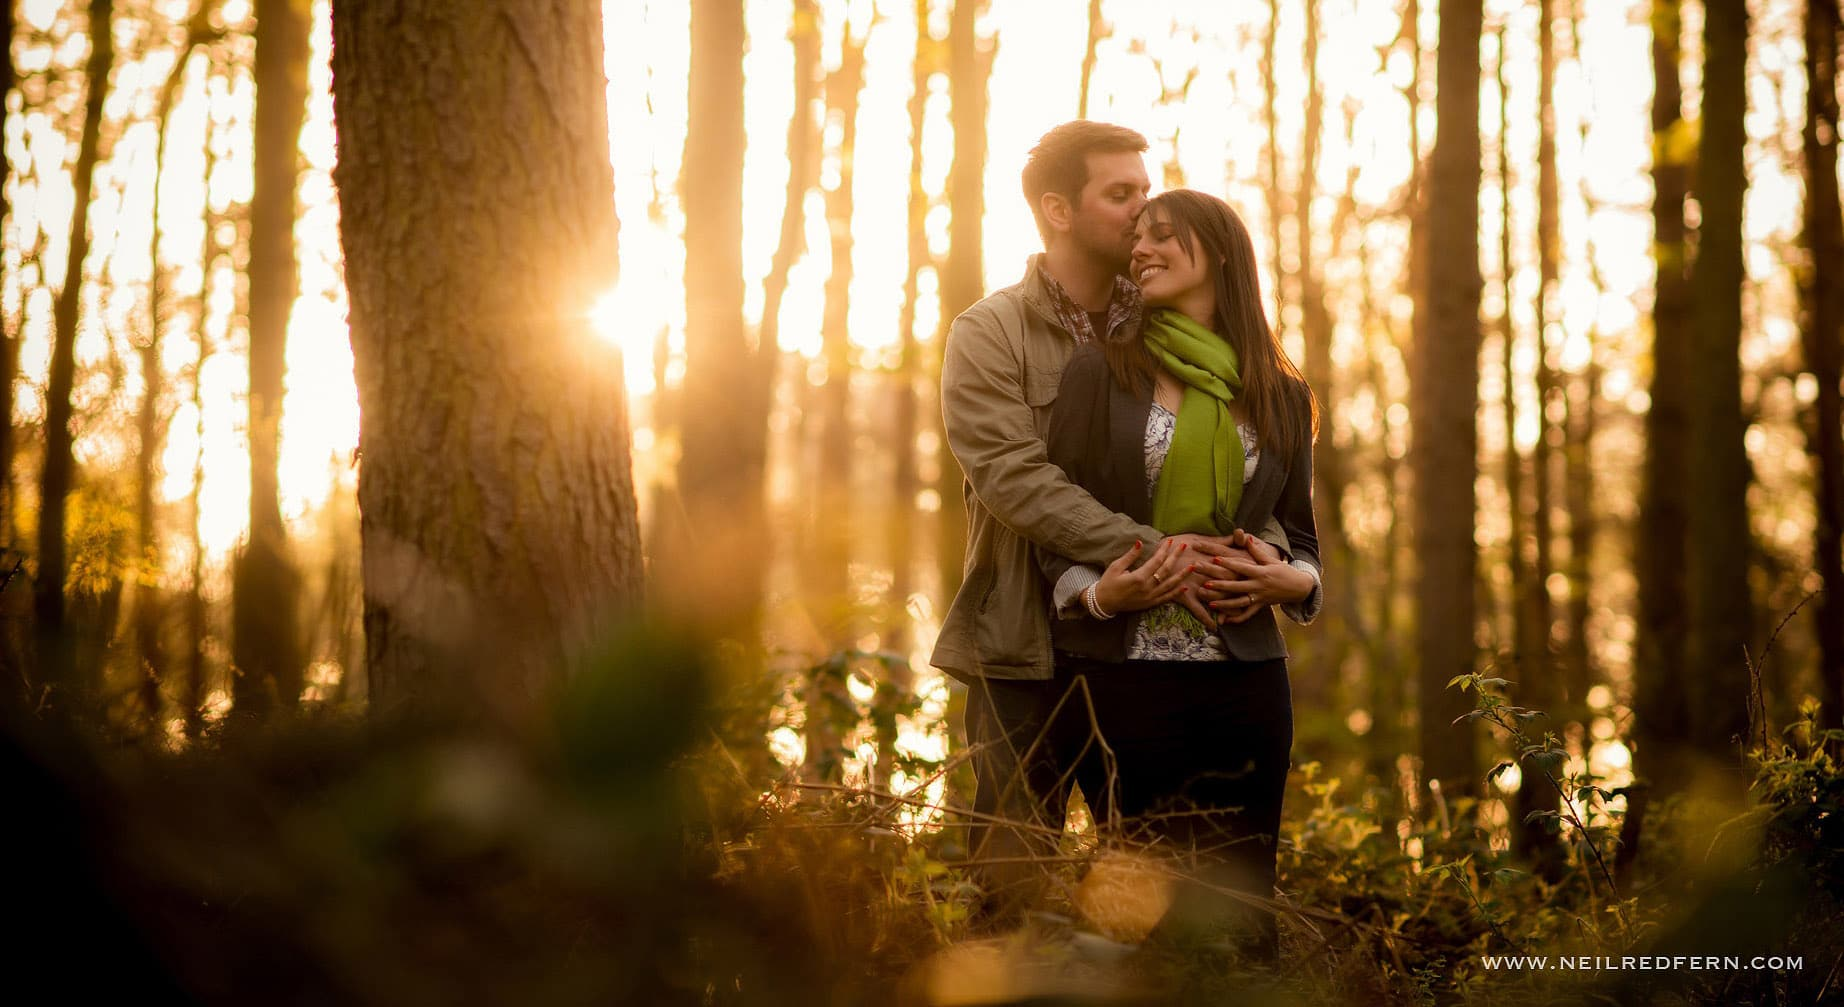 Delamere forest engagement shoot photography 1